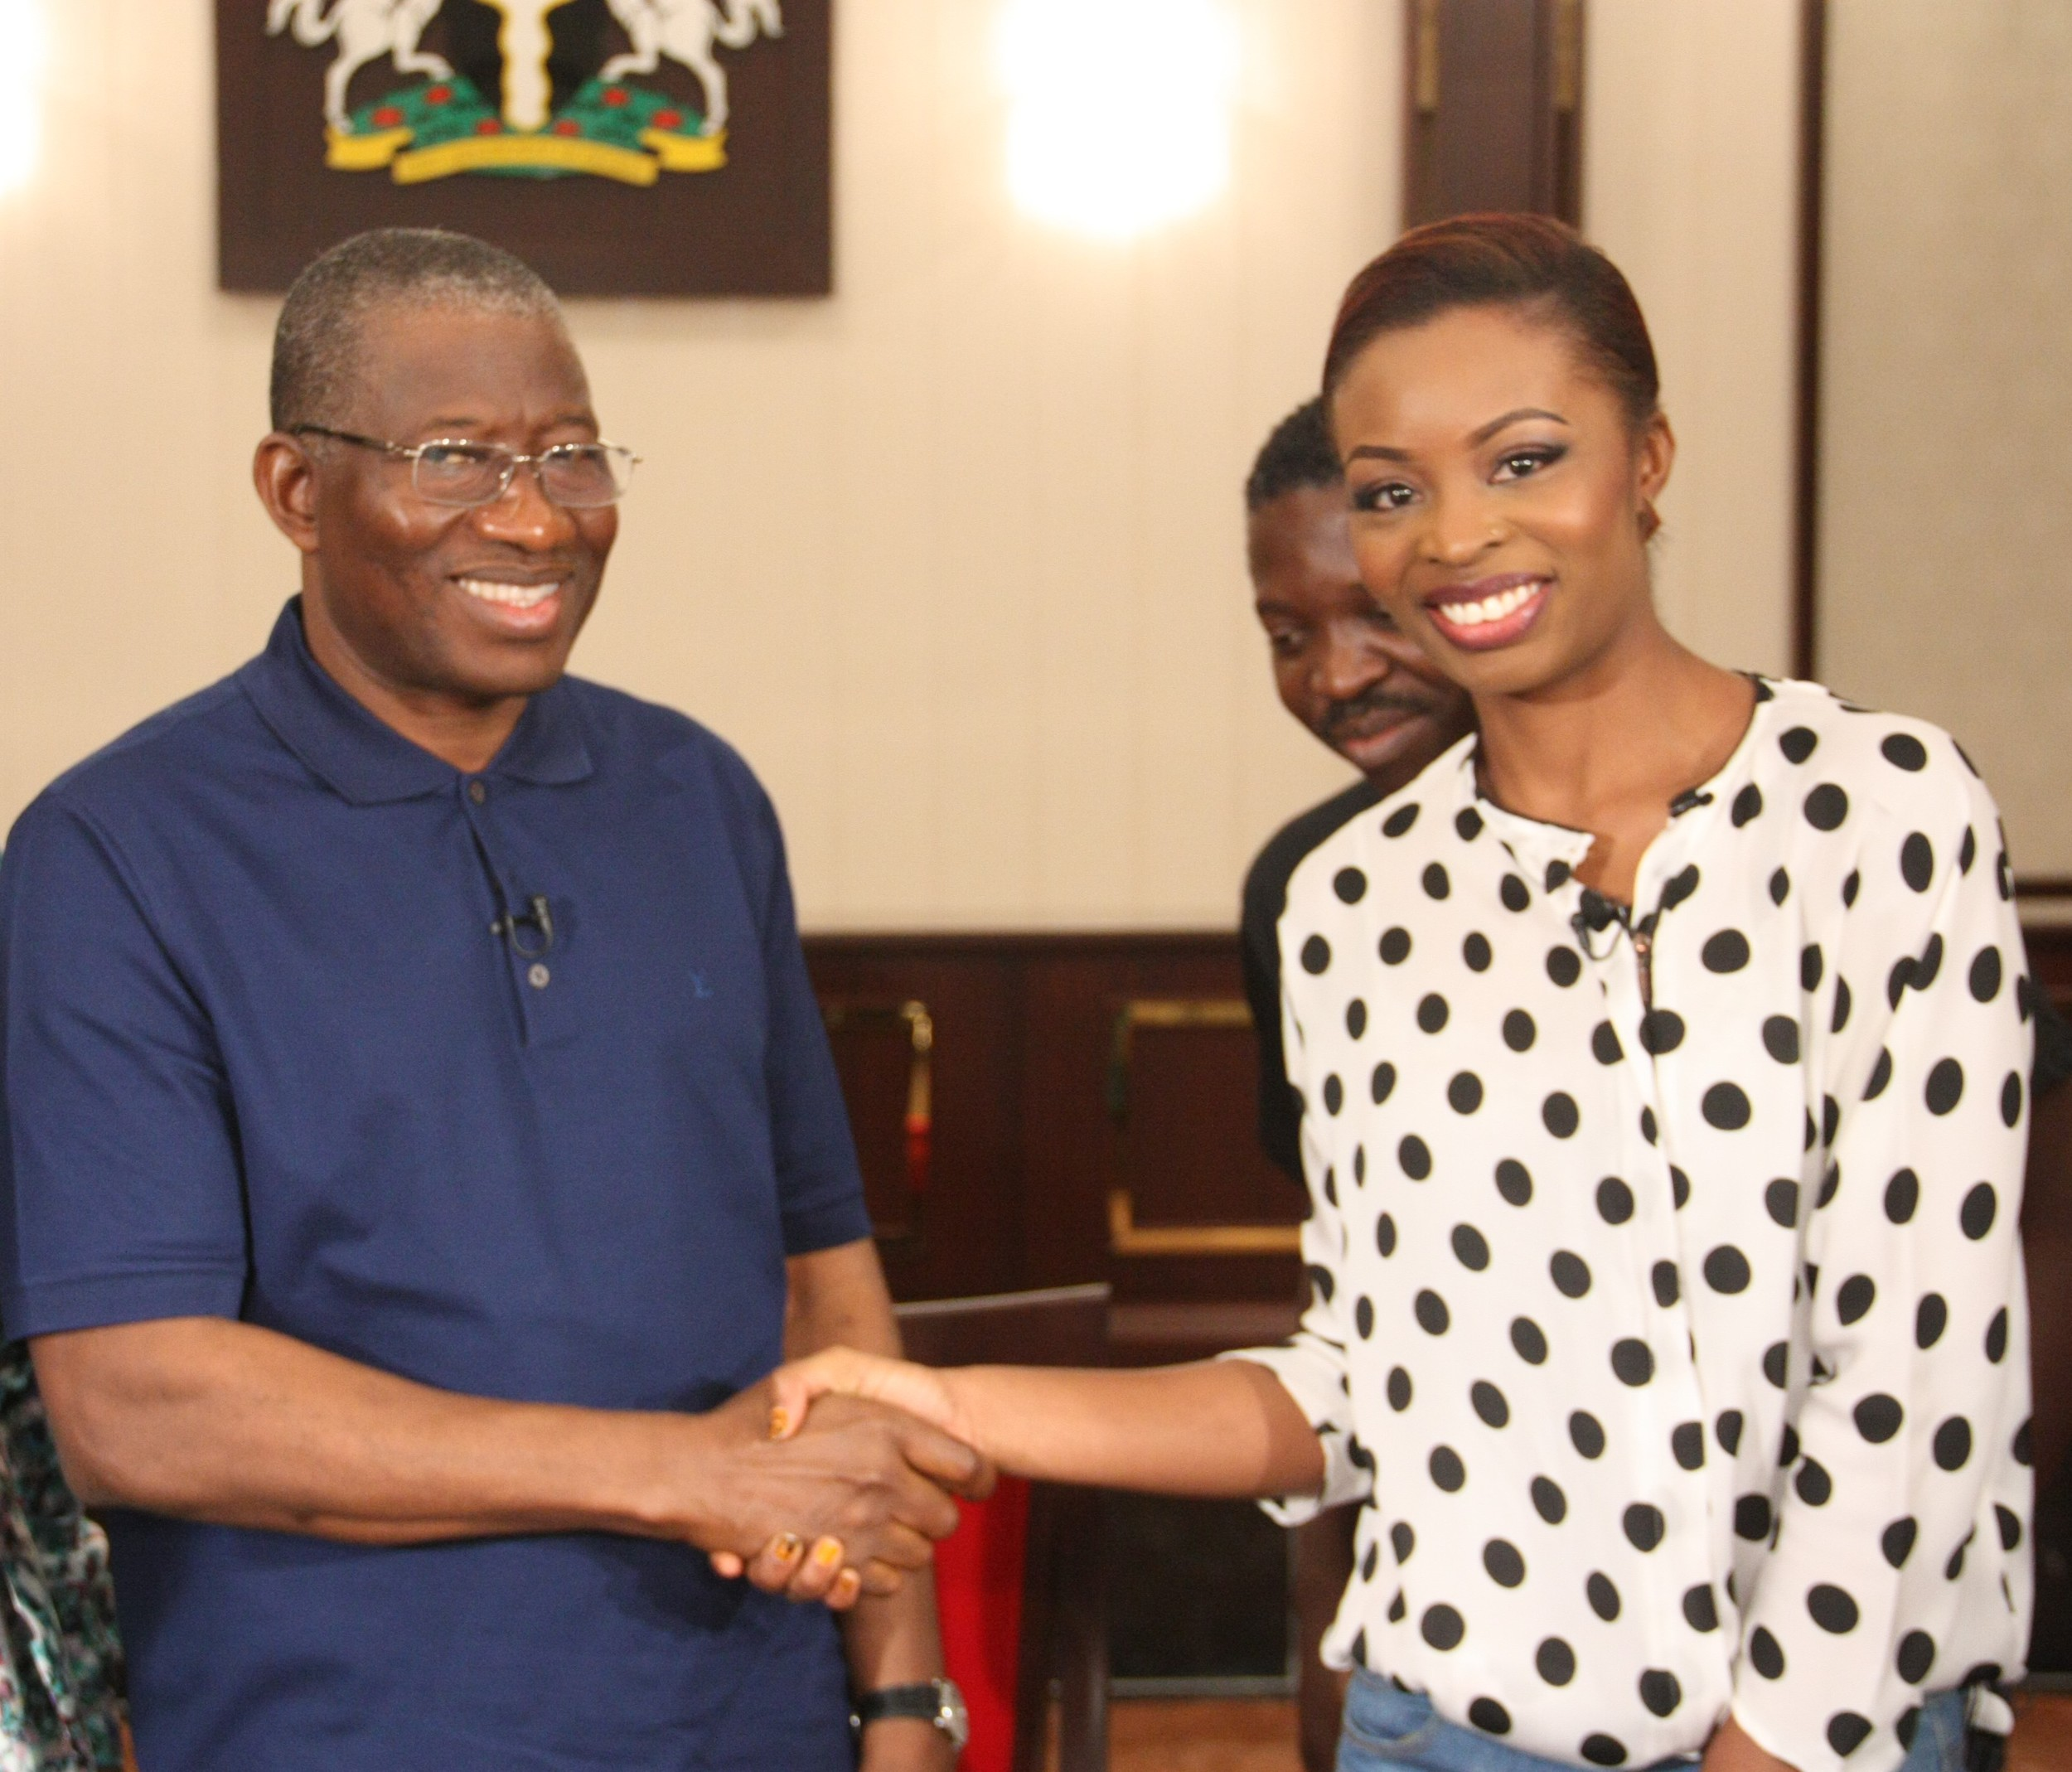 Post-Interview photo with Nigeria's President Goodluck Jonathan